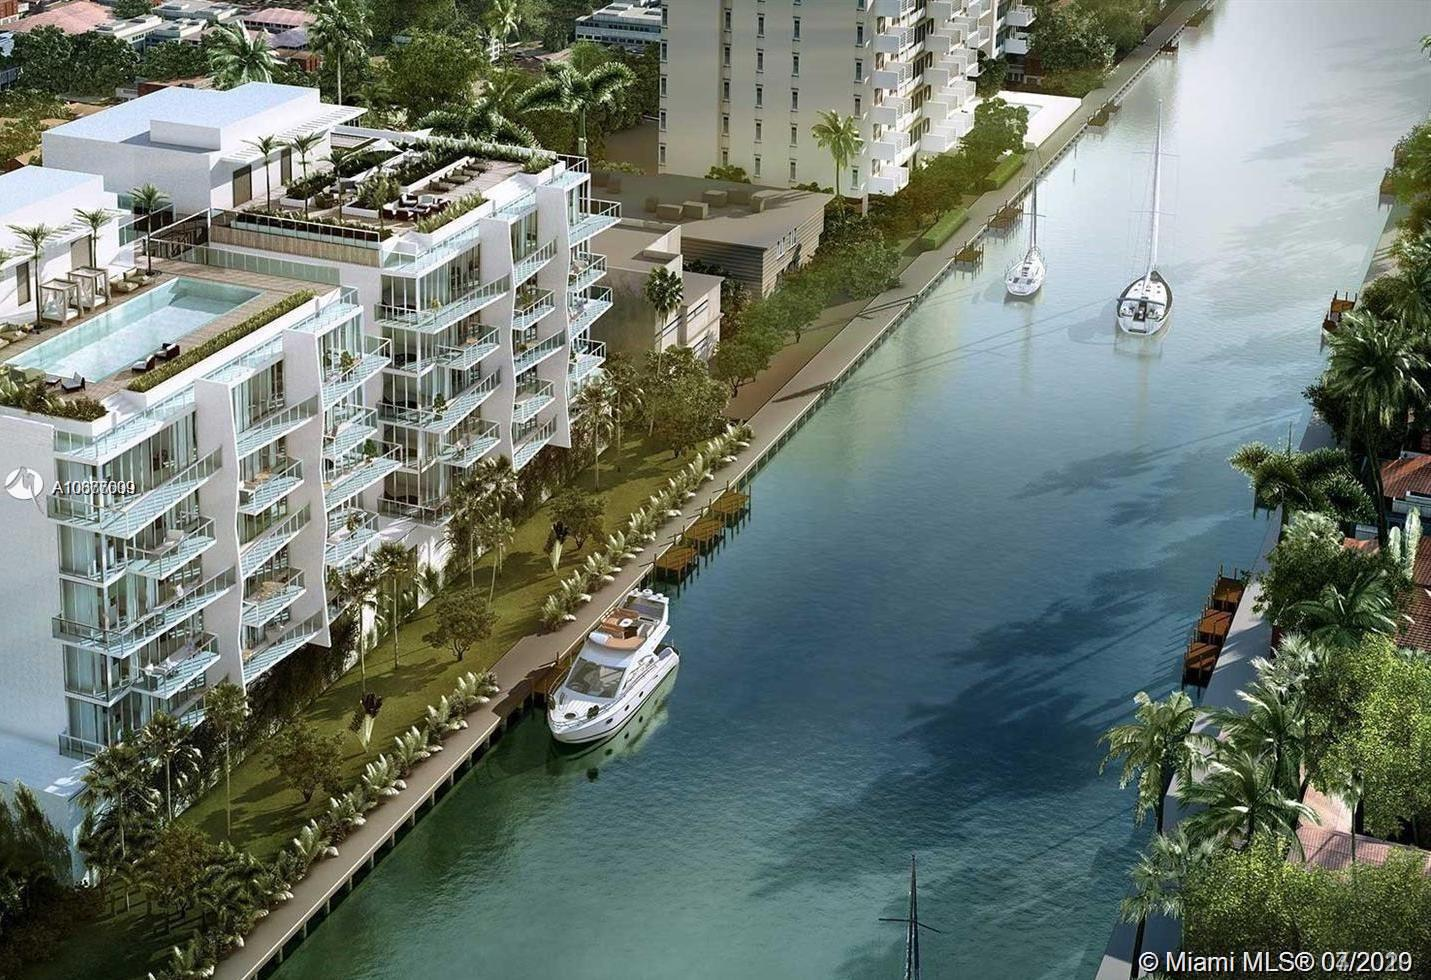 Amazing corner 2beds/2bath unit WITH Beautiful CANAL VIEWS with the Boat slips included in the price.  walking distance from the beach and Bal Harbor Shops. Kai at Bay Harbor is a striking 7-story boutique building designed by Arquitectonica with breathtaking views of Bay Harbor Islands. Kai offers Exquisite picturesque interiors with floor to ceiling glass windows and invigorating enclosed balconies. The infinity roof top pool and sun deck showcases 360 views of Bay Harbor and the bay. Features include 24hrs concierge, marina, fitness center, residents lounge, and roof top summer kitchen area. Units are designed with Mia Cucina cabinetry, quarts countertops, and Bosch appliances.